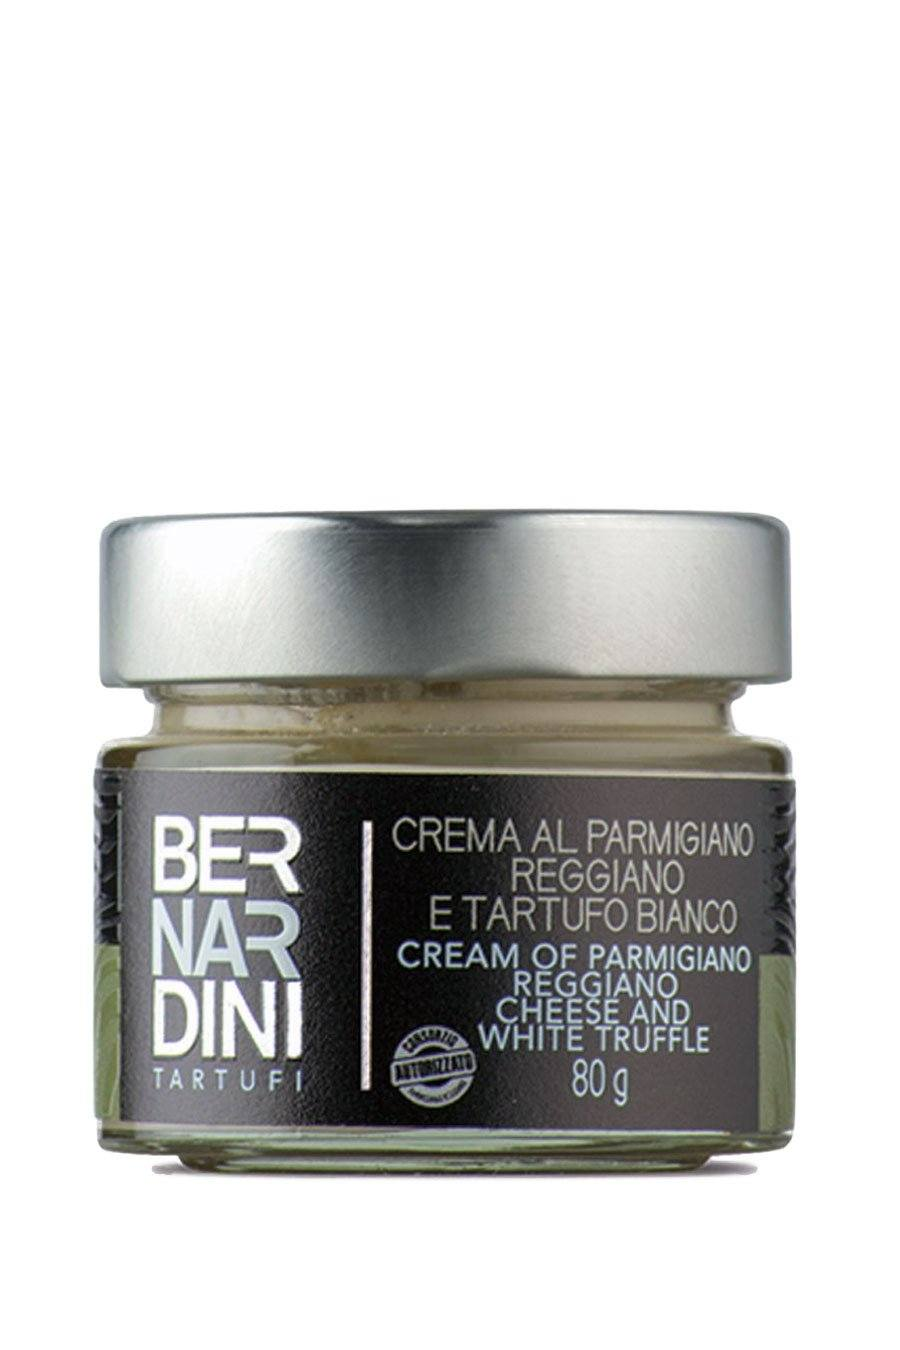 Cream of Parmigiano Reggiano Cheese and White Truffle 80g - Agrumia